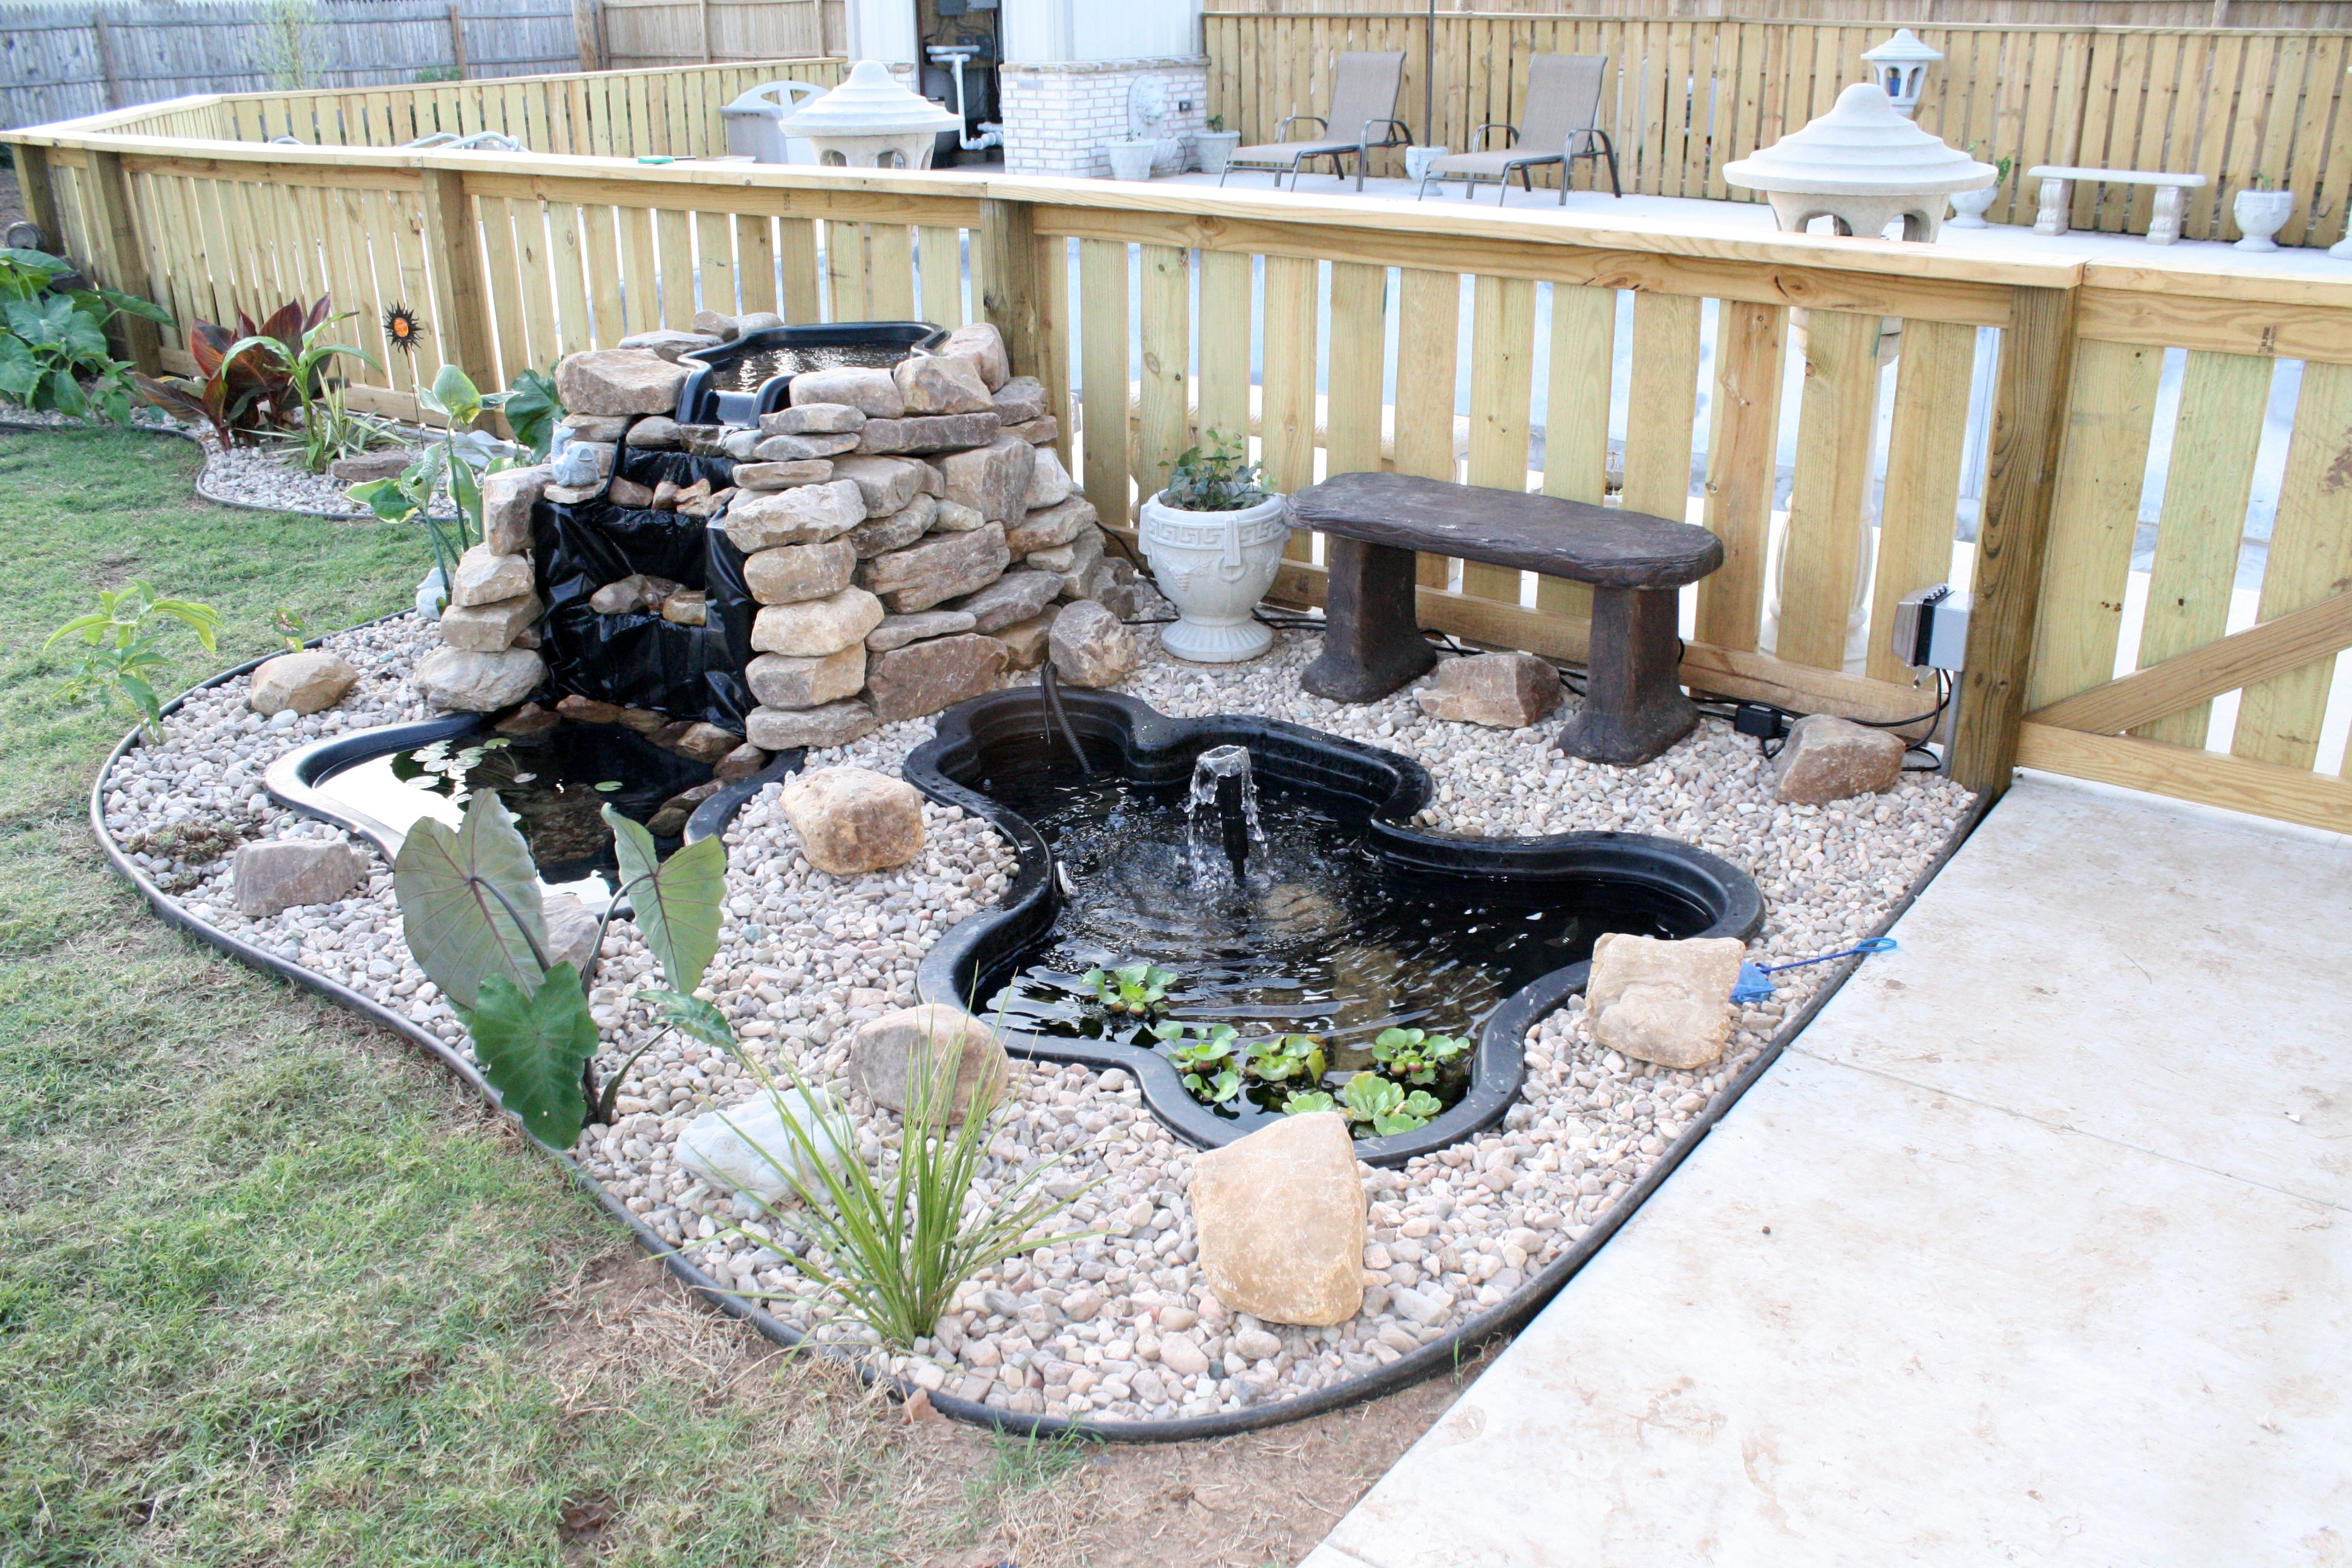 Backyard fish pond my garden pinterest fish ponds for Backyard fish pond designs